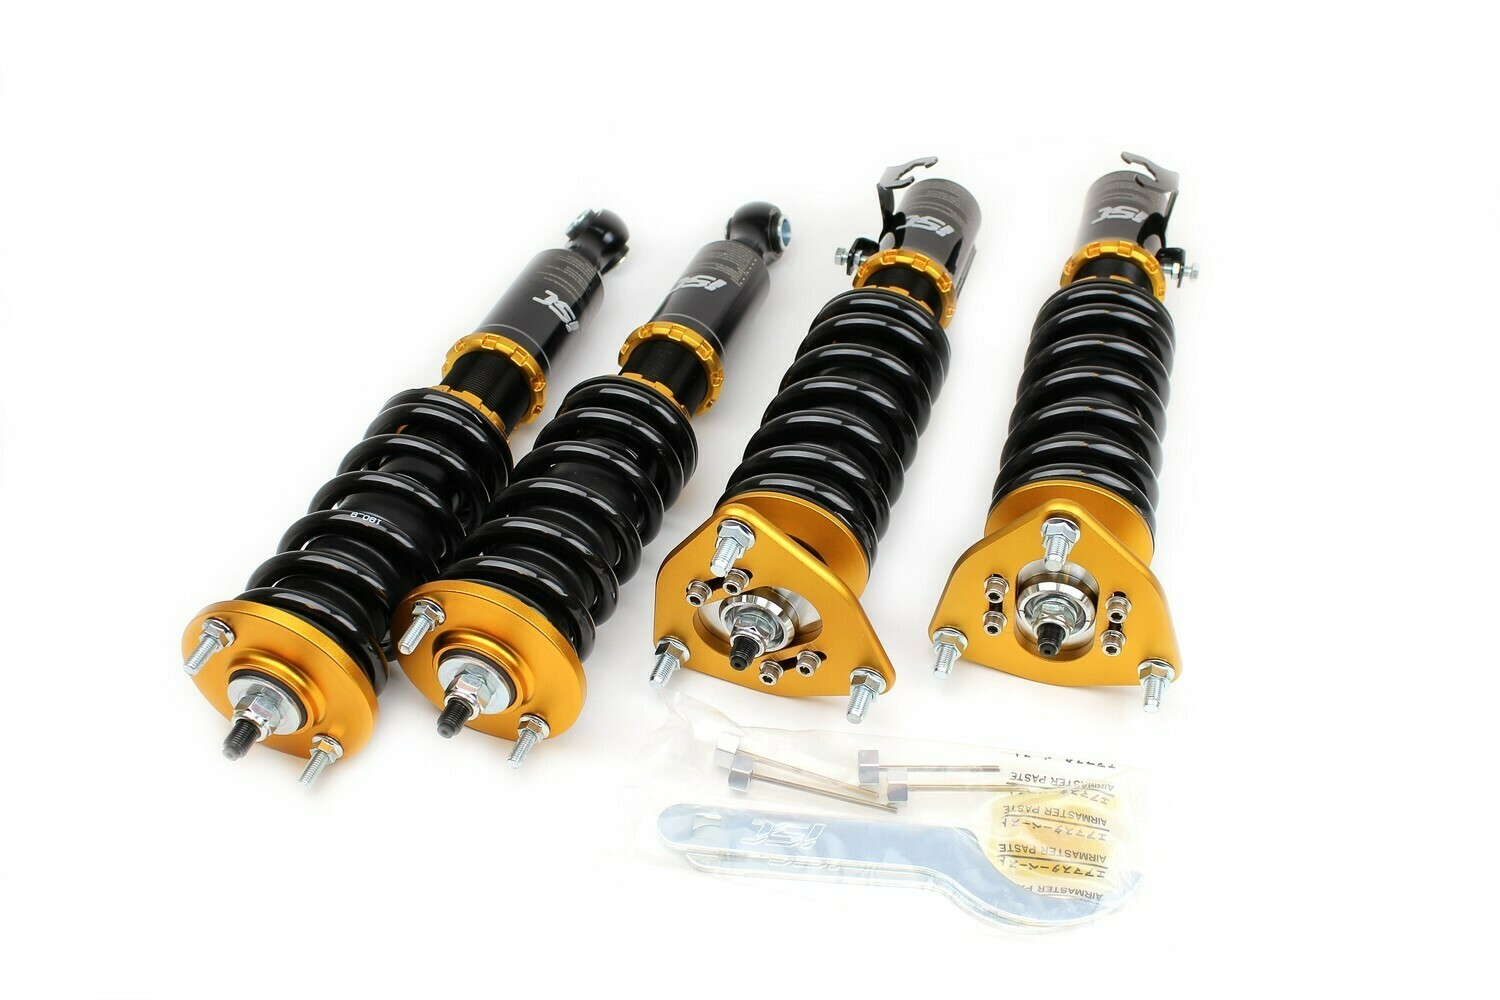 Nissan S14 Silvia 95-98 ISC N1 V2 Coilover Suspension